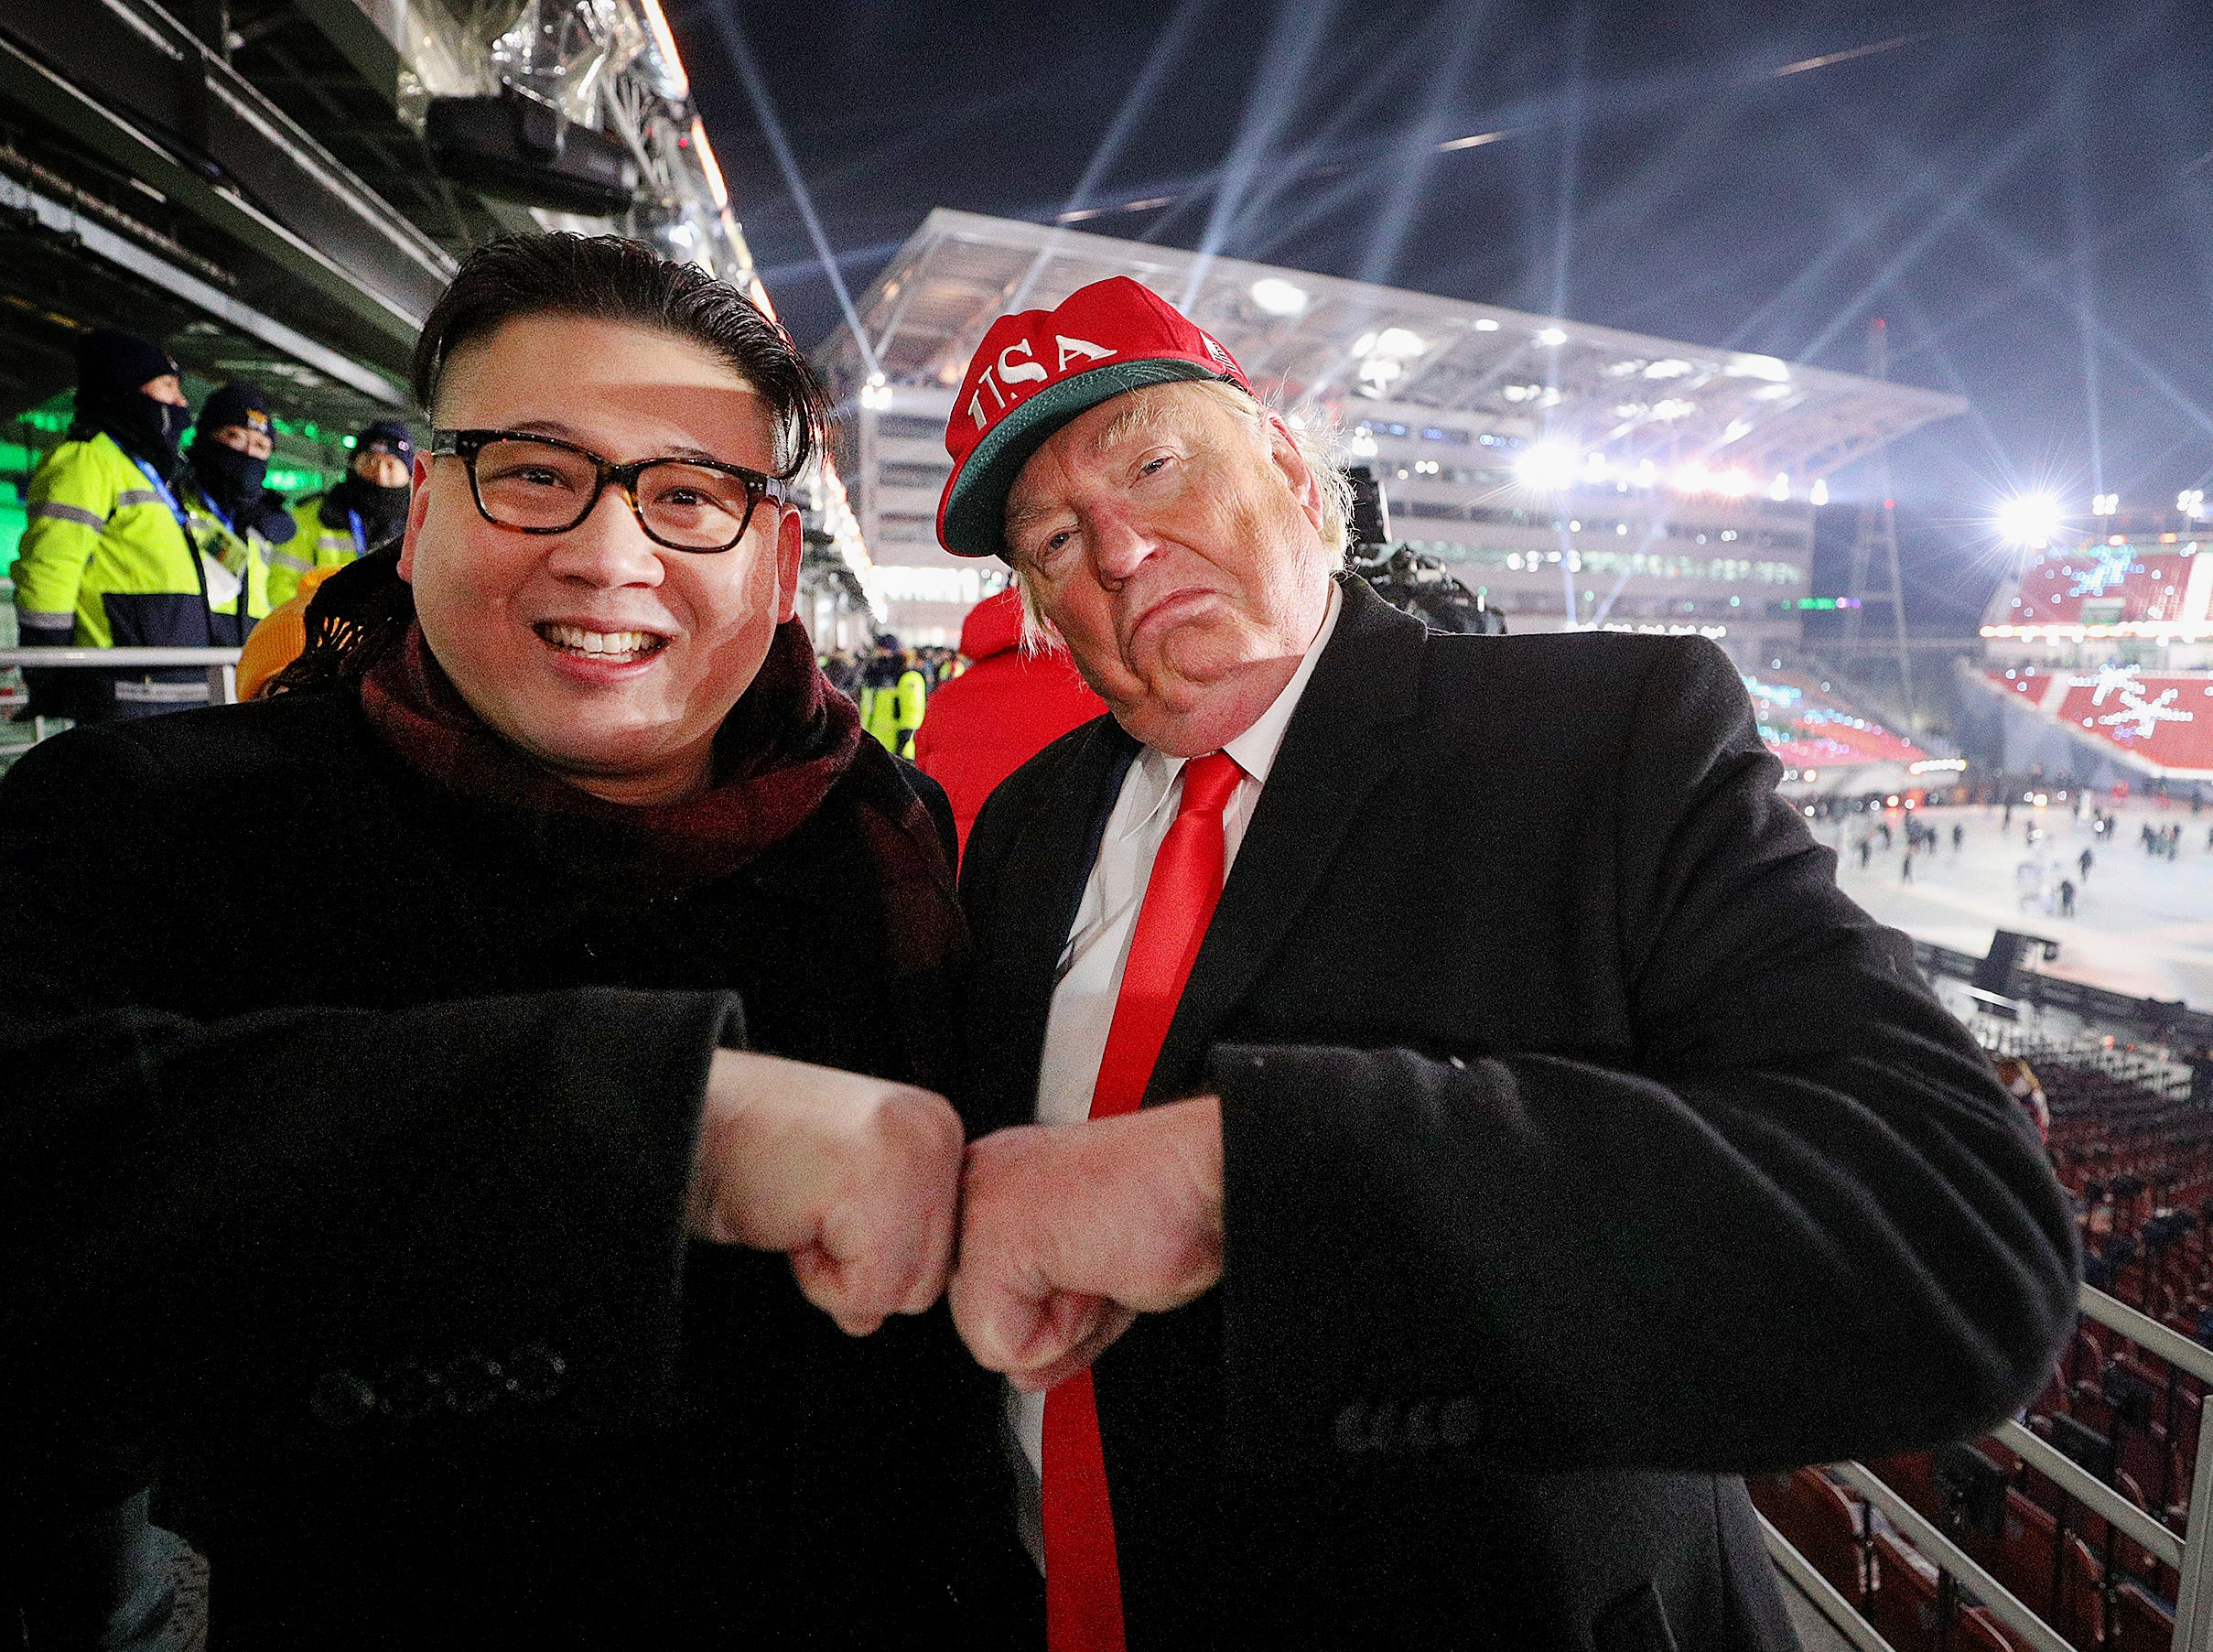 Feb 9, 2018; Pyeongchang, South Korea; A Donald Trump and Kim Jong-un impersonators at the opening ceremonies at the Pyeongchang 2018 Olympic Winter Games at Pyeongchang Olympic Stadium. Mandatory Credit: Matt Kryger-USA TODAY Sports